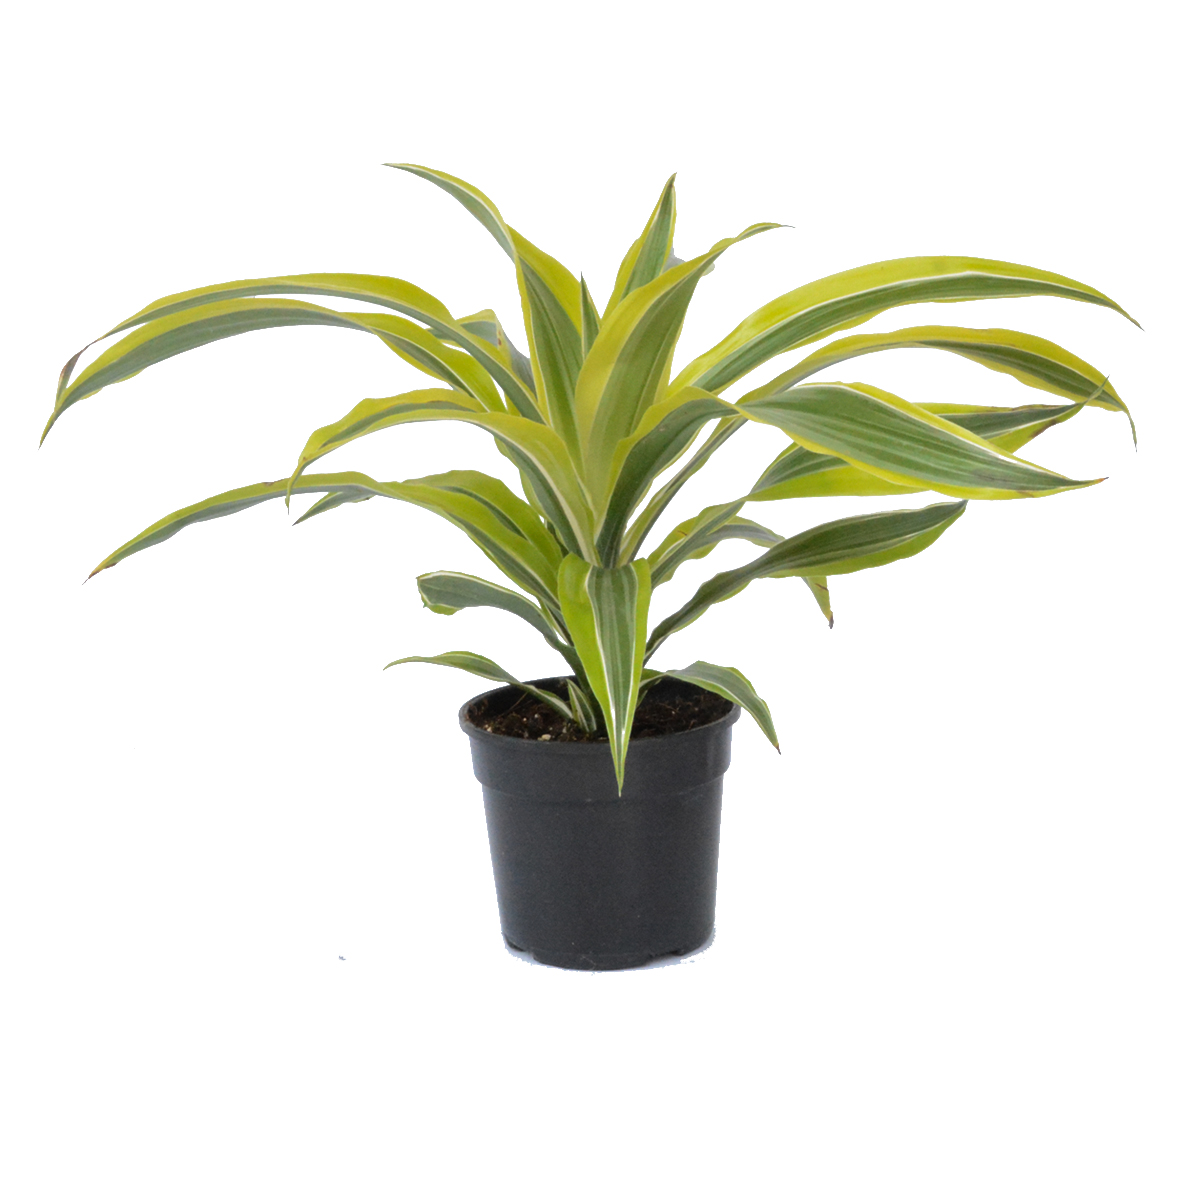 Dracaena Lemon Lime Tips 14cm